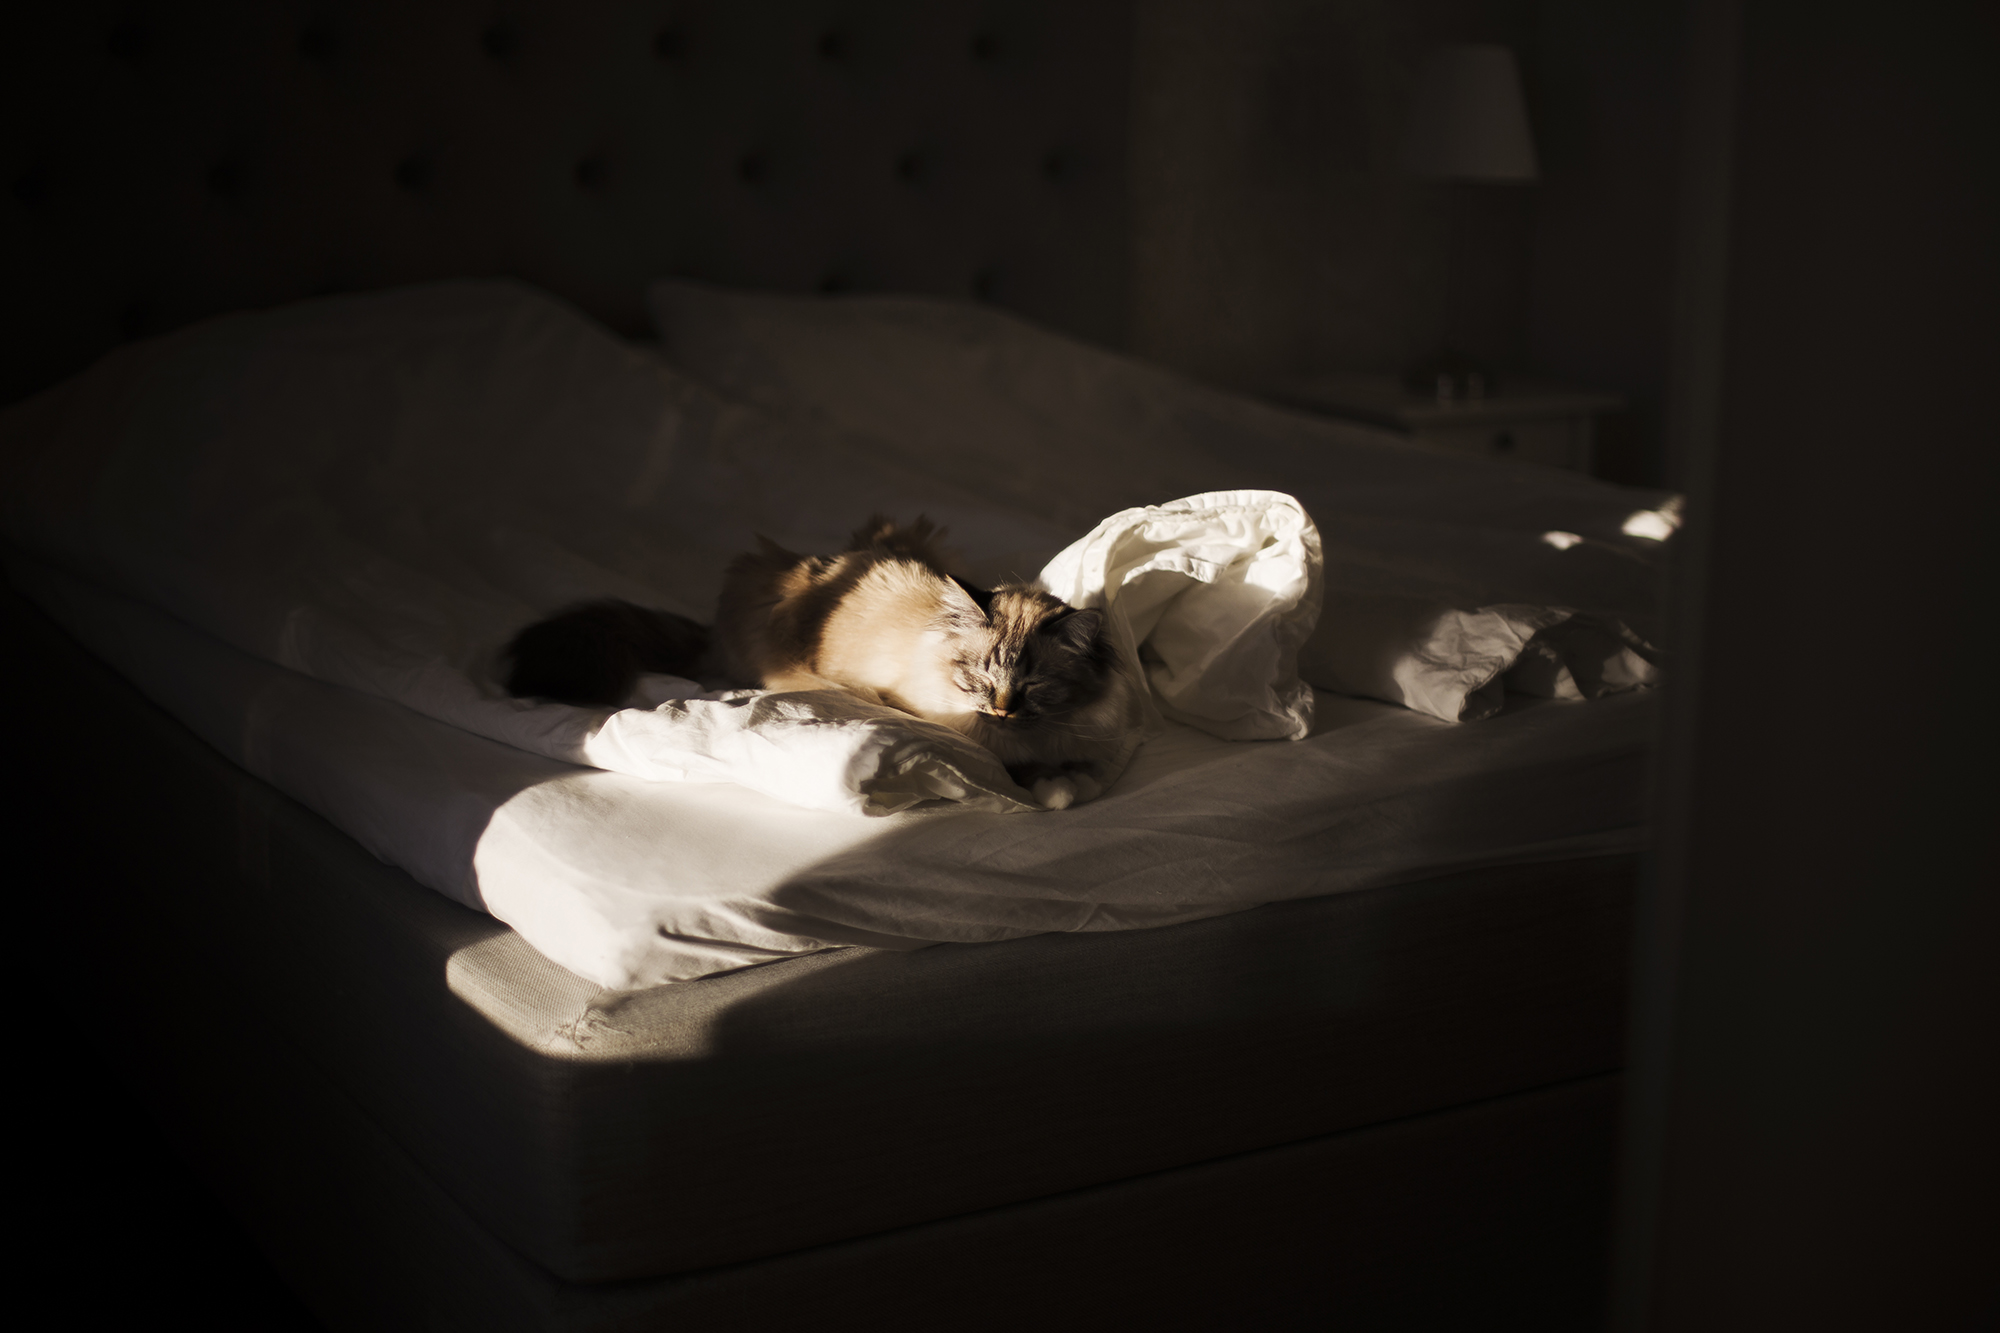 The soft sun light that shines through the window of my cat who is sleeping…